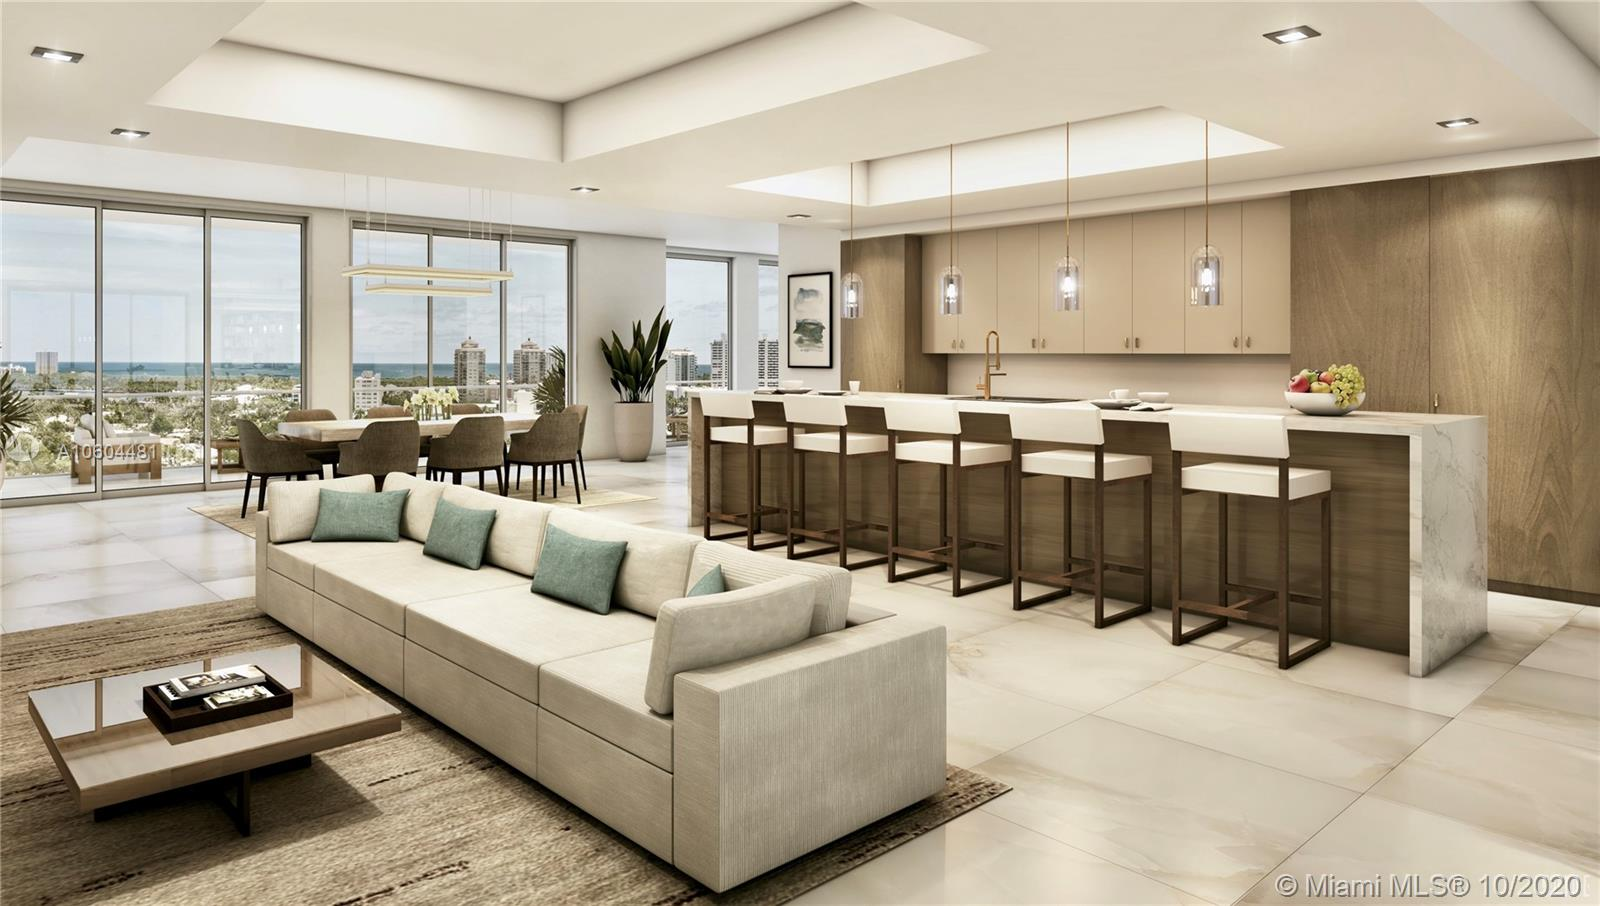 One of Fort Lauderdale's Most Spectacular Penthouses | Currently Being Built-Out | Flow-Through Penthouse with Ocean, Intracoastal, Skyline & Sunset Views | Summer Kitchen on Huge Terrace Overlooking the Ocean & Parks | Private, 2 Car Garage & Boat Slip Included | Large Storage, Golf & Kayak Lockers Included | Enjoy the Unparalleled Lifestyle at RIVA: 40,000 SF of Amenities including Lap Pool, 7,000 SF Gym with Fitness Studio, Resort Style SPA with Sauna, Steam & Treatment Rooms, Sunset Deck with Jacuzzi, Residence Lounge, Kitchen to Entertain, 24/7 Front Desk Attendant, Valet, Dog Walks, 400 Feet of Waterfront, Paddle-board/Kayak Lockers & Central Location. Speak with the On-Site Sales Team to See Both Remaining Penthouses.